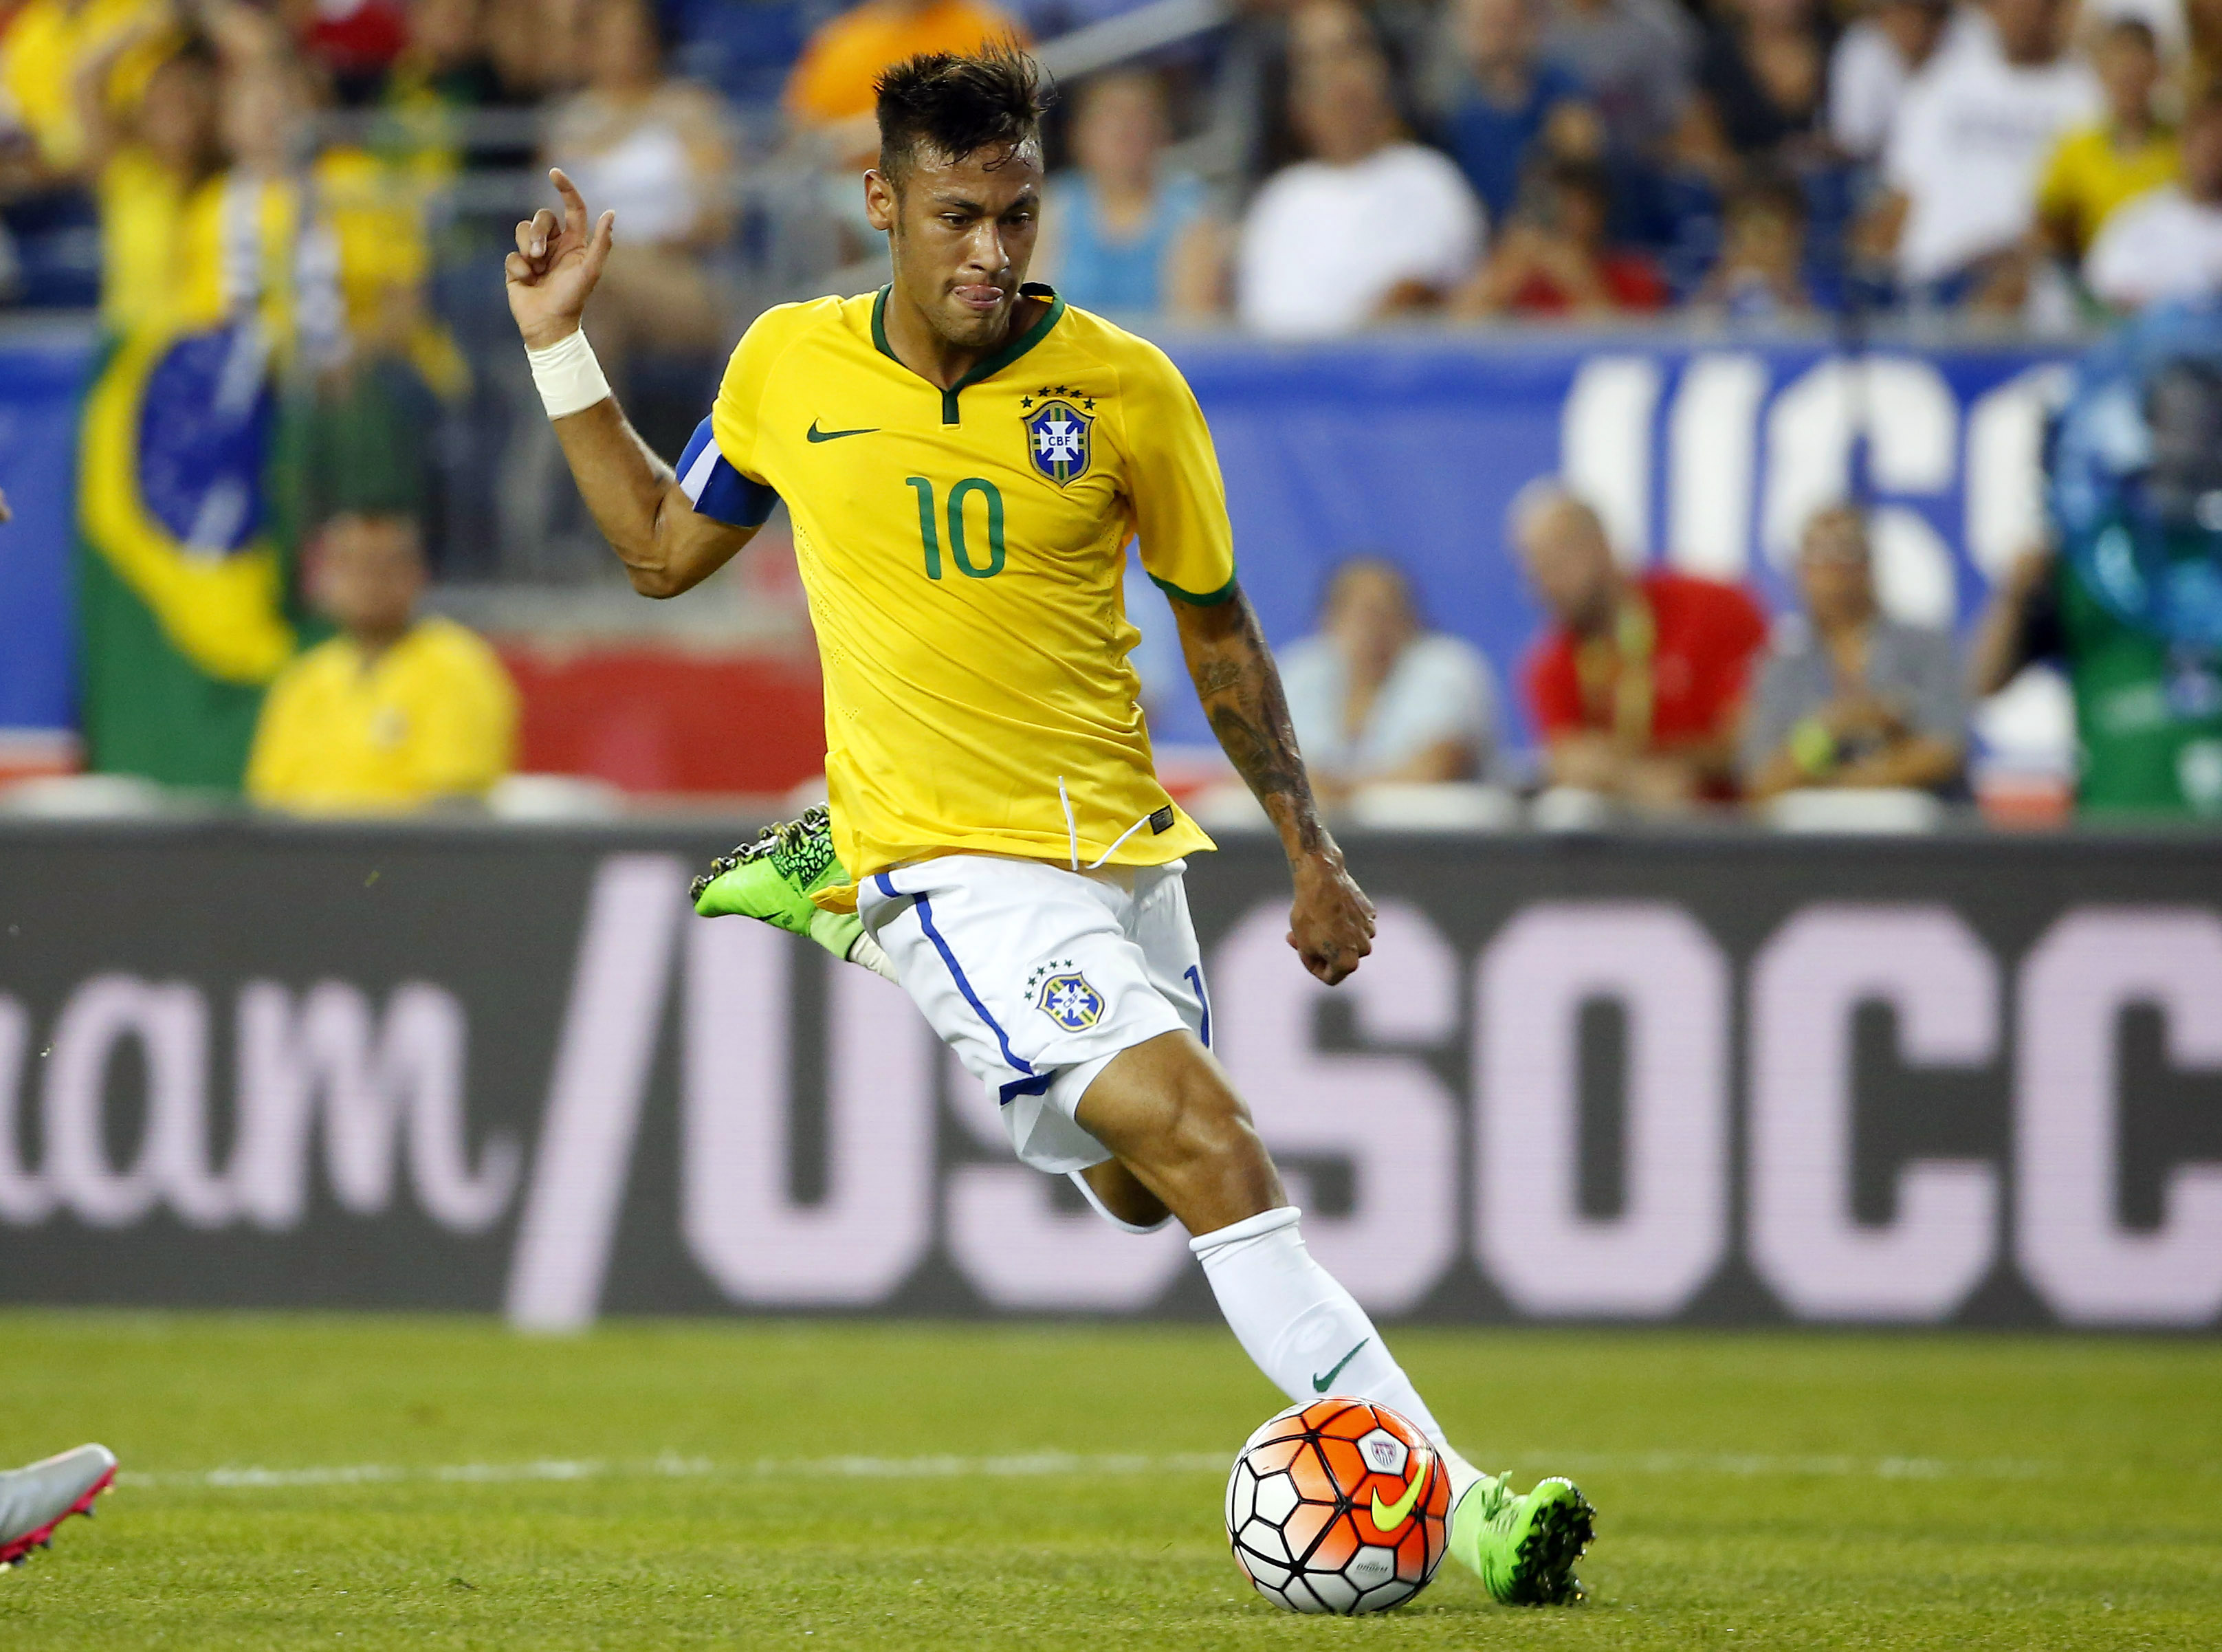 All eyes are on Neymar as Brazil looks to end their Gold Medal drought.